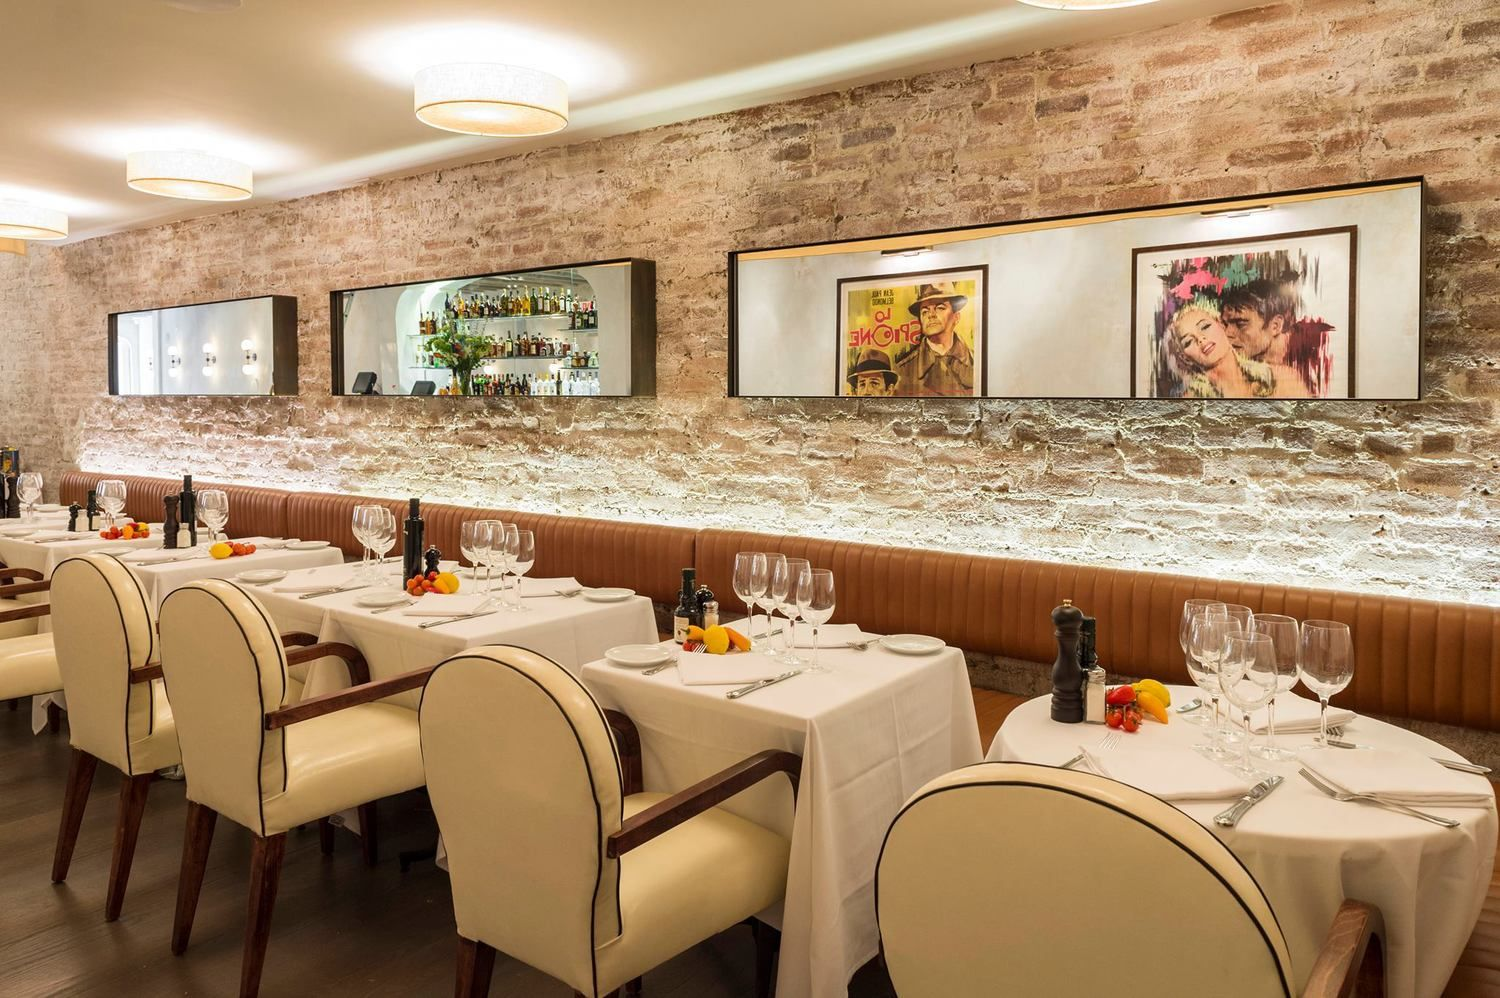 San Antonio Winery Los Angeles Central L A Photos Restaurant Reviews Order Online Food Delivery Tripadvisor